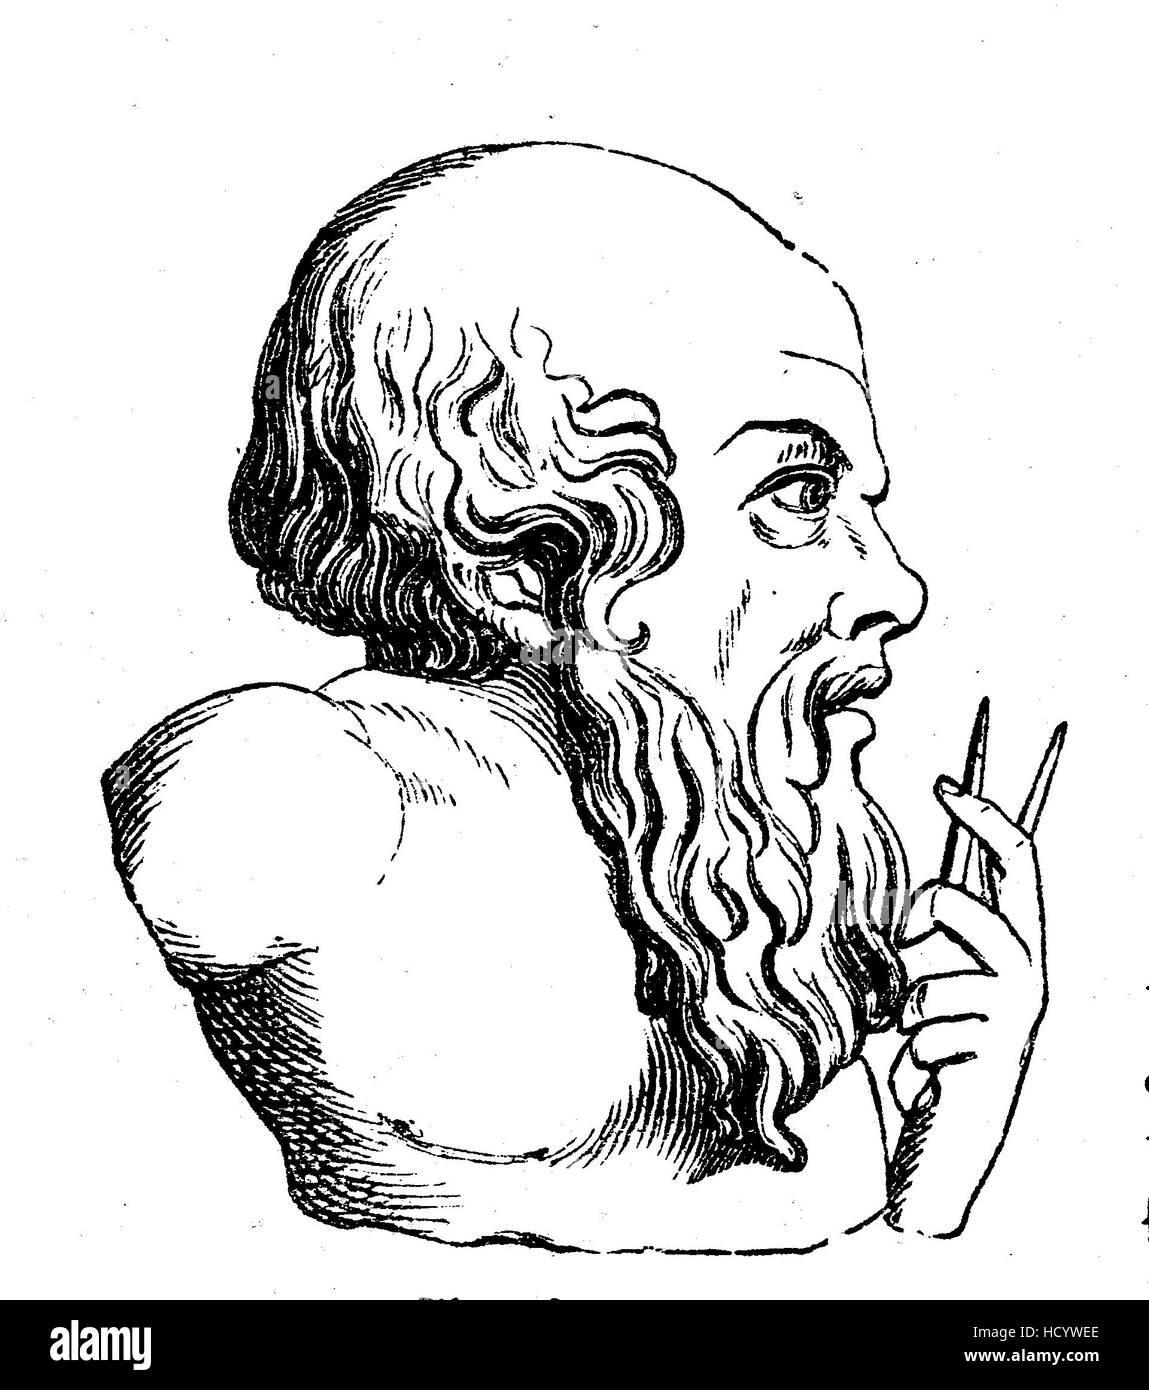 Archimedes of Syracuse, 287 BC - 212 BC, Ancient Greek mathematician, physicist, engineer, inventor, and astronomer., - Stock Image